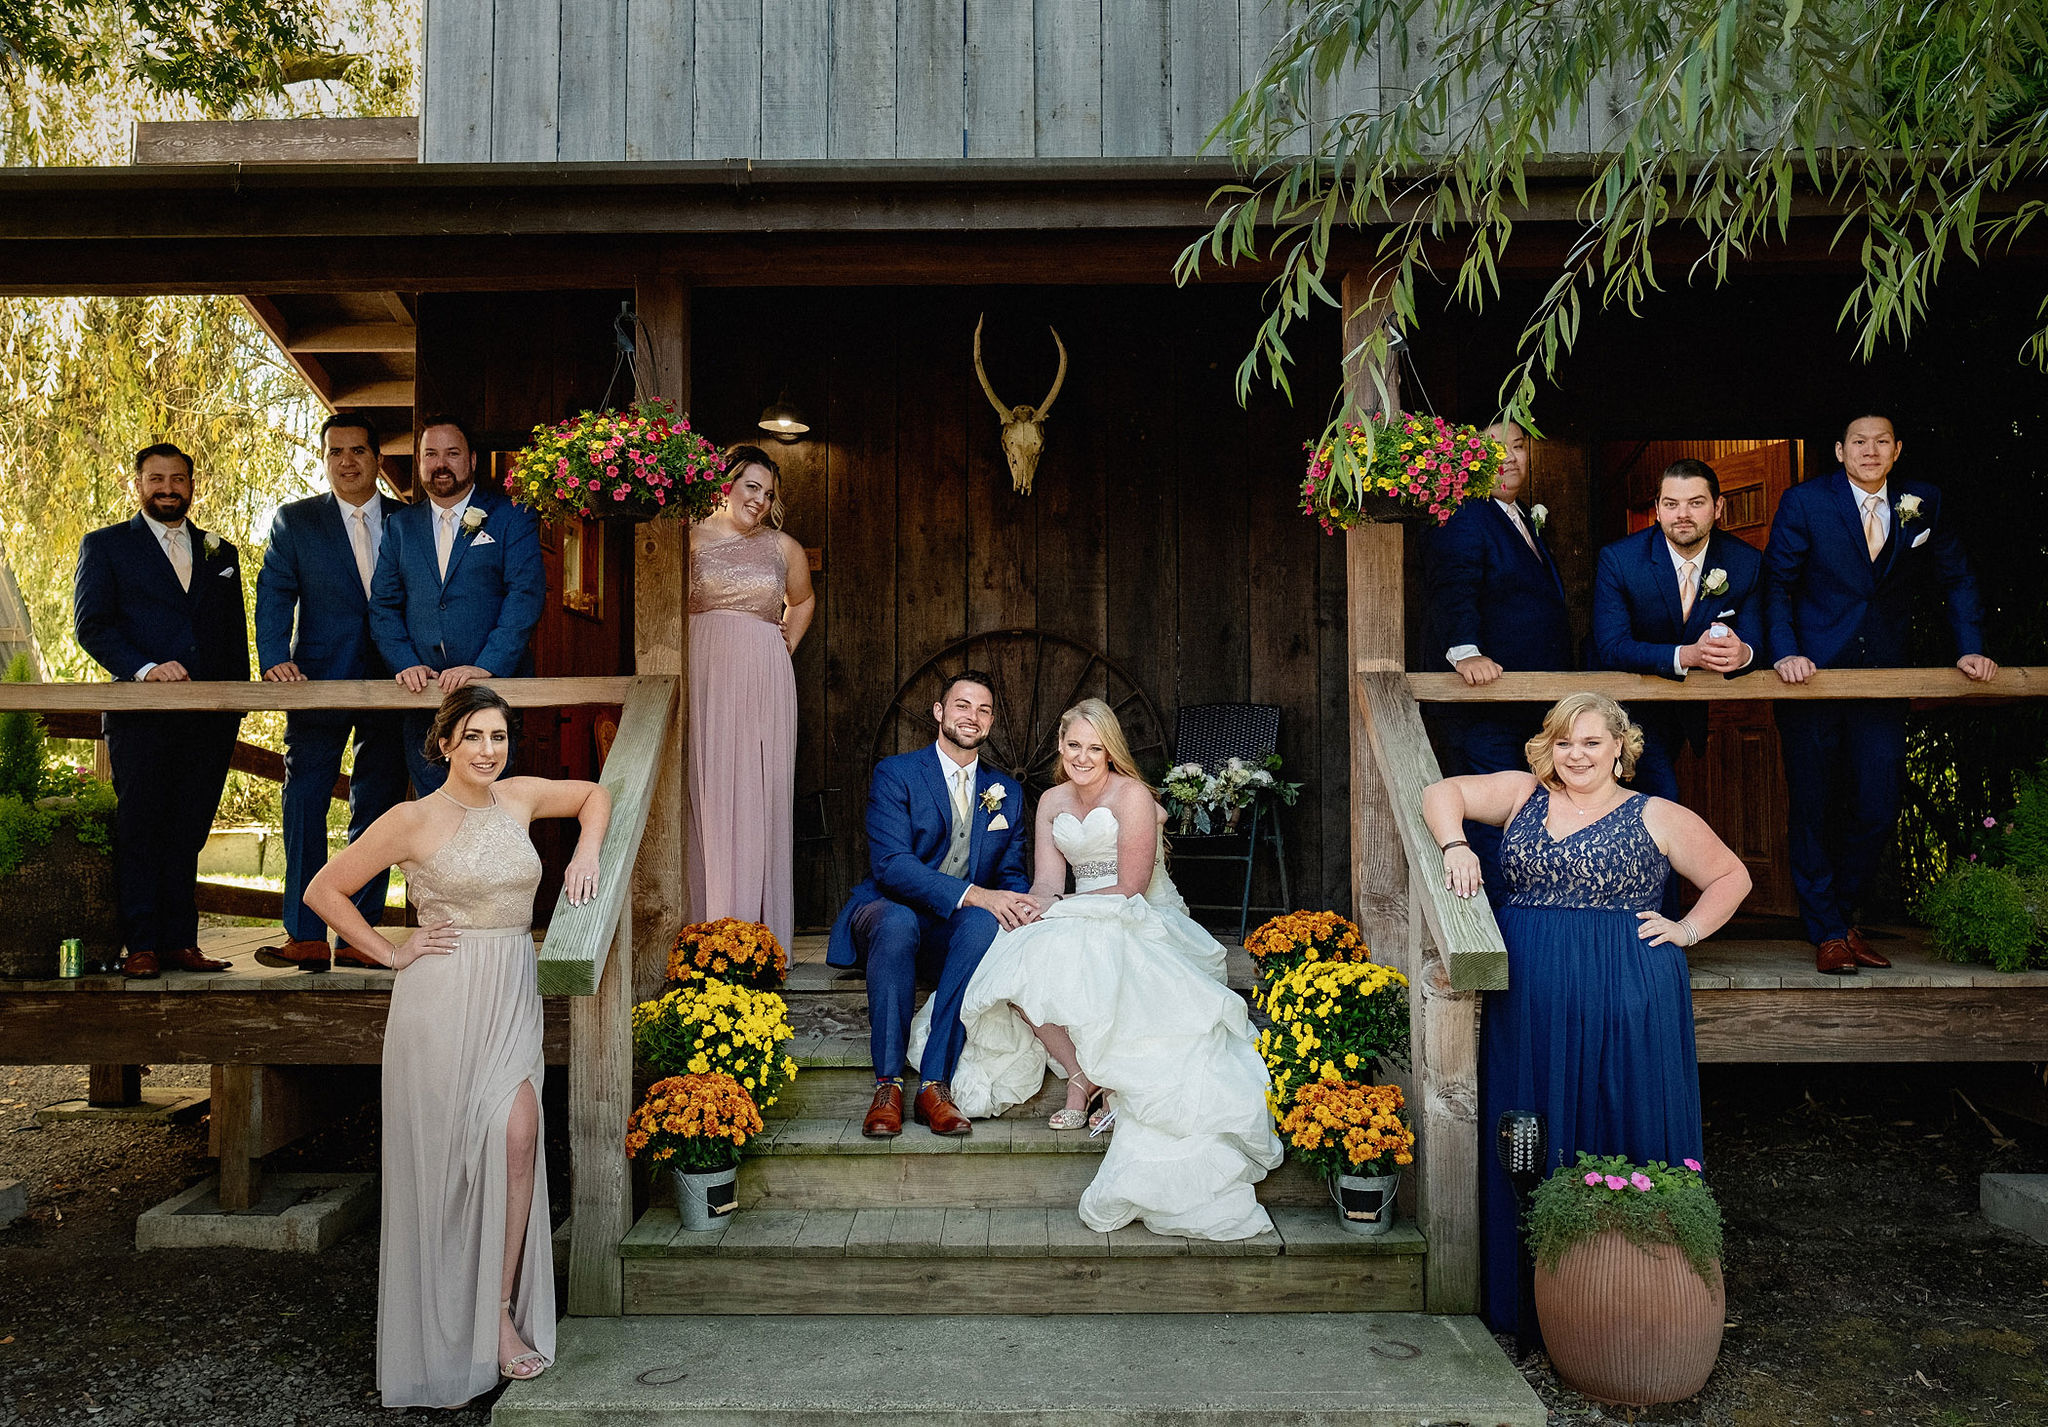 Bridalbliss.com | Seattle Wedding | Washington Event Coordination and Design | Maurice Photo